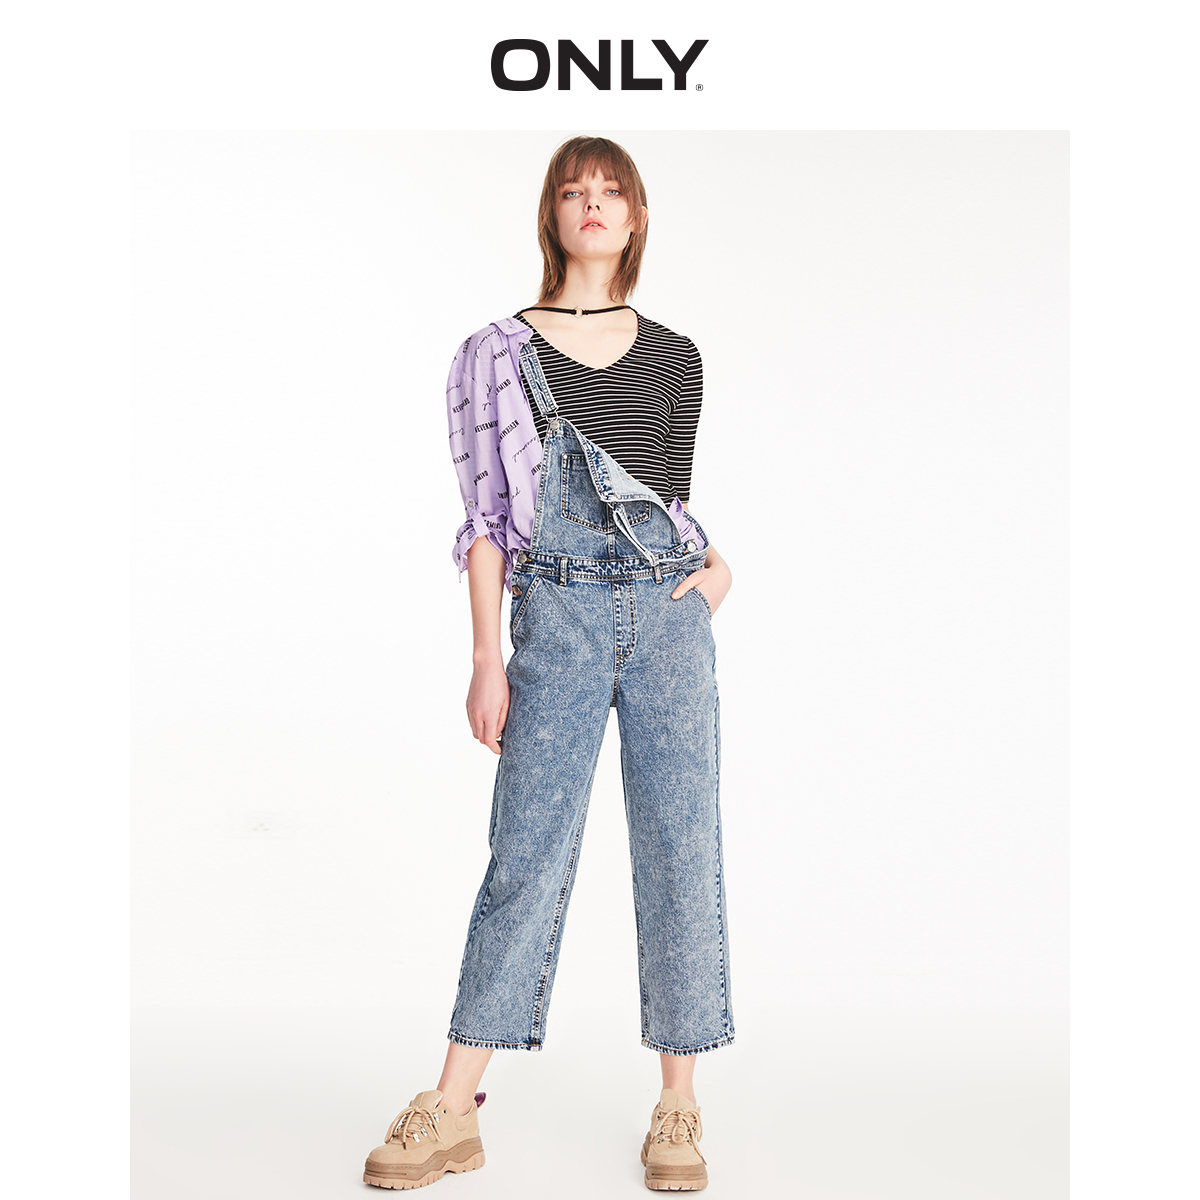 ONLY Women's Loose Straight Fit 100% Cotton Capri Denim Overalls | 11927K502